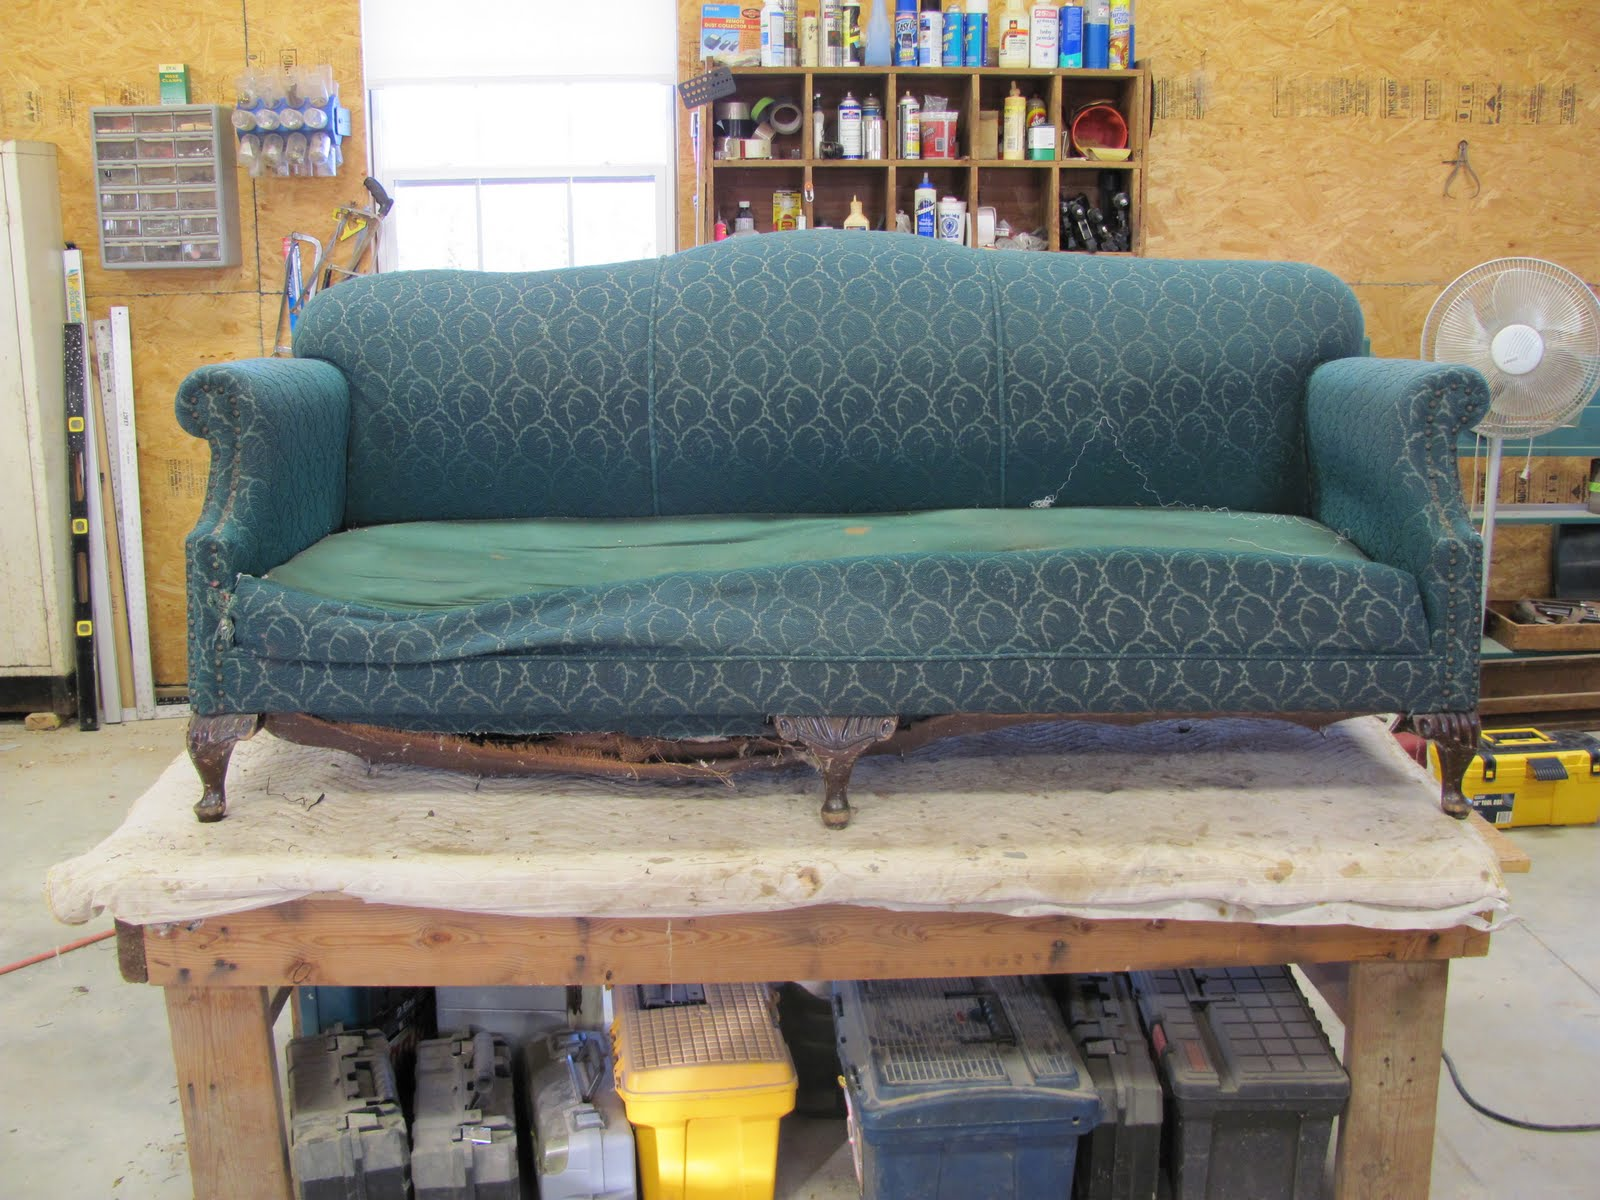 Springs For Sofa Repairing Sectional Slipcovers Diy Thomas Nelson Furniture Restoration Re Working